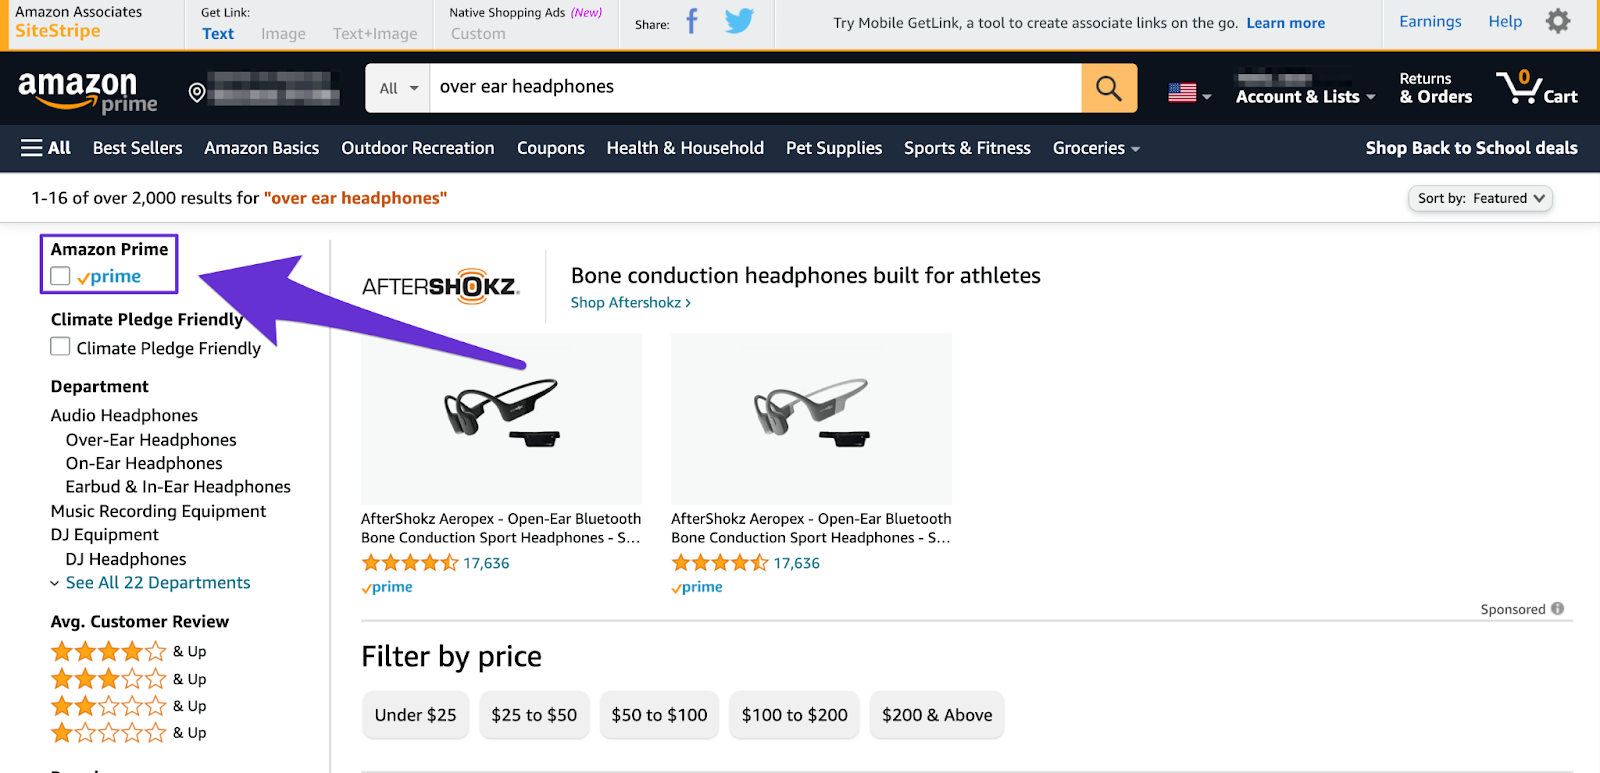 amazon affiliate filtering search by whether product is available on prime